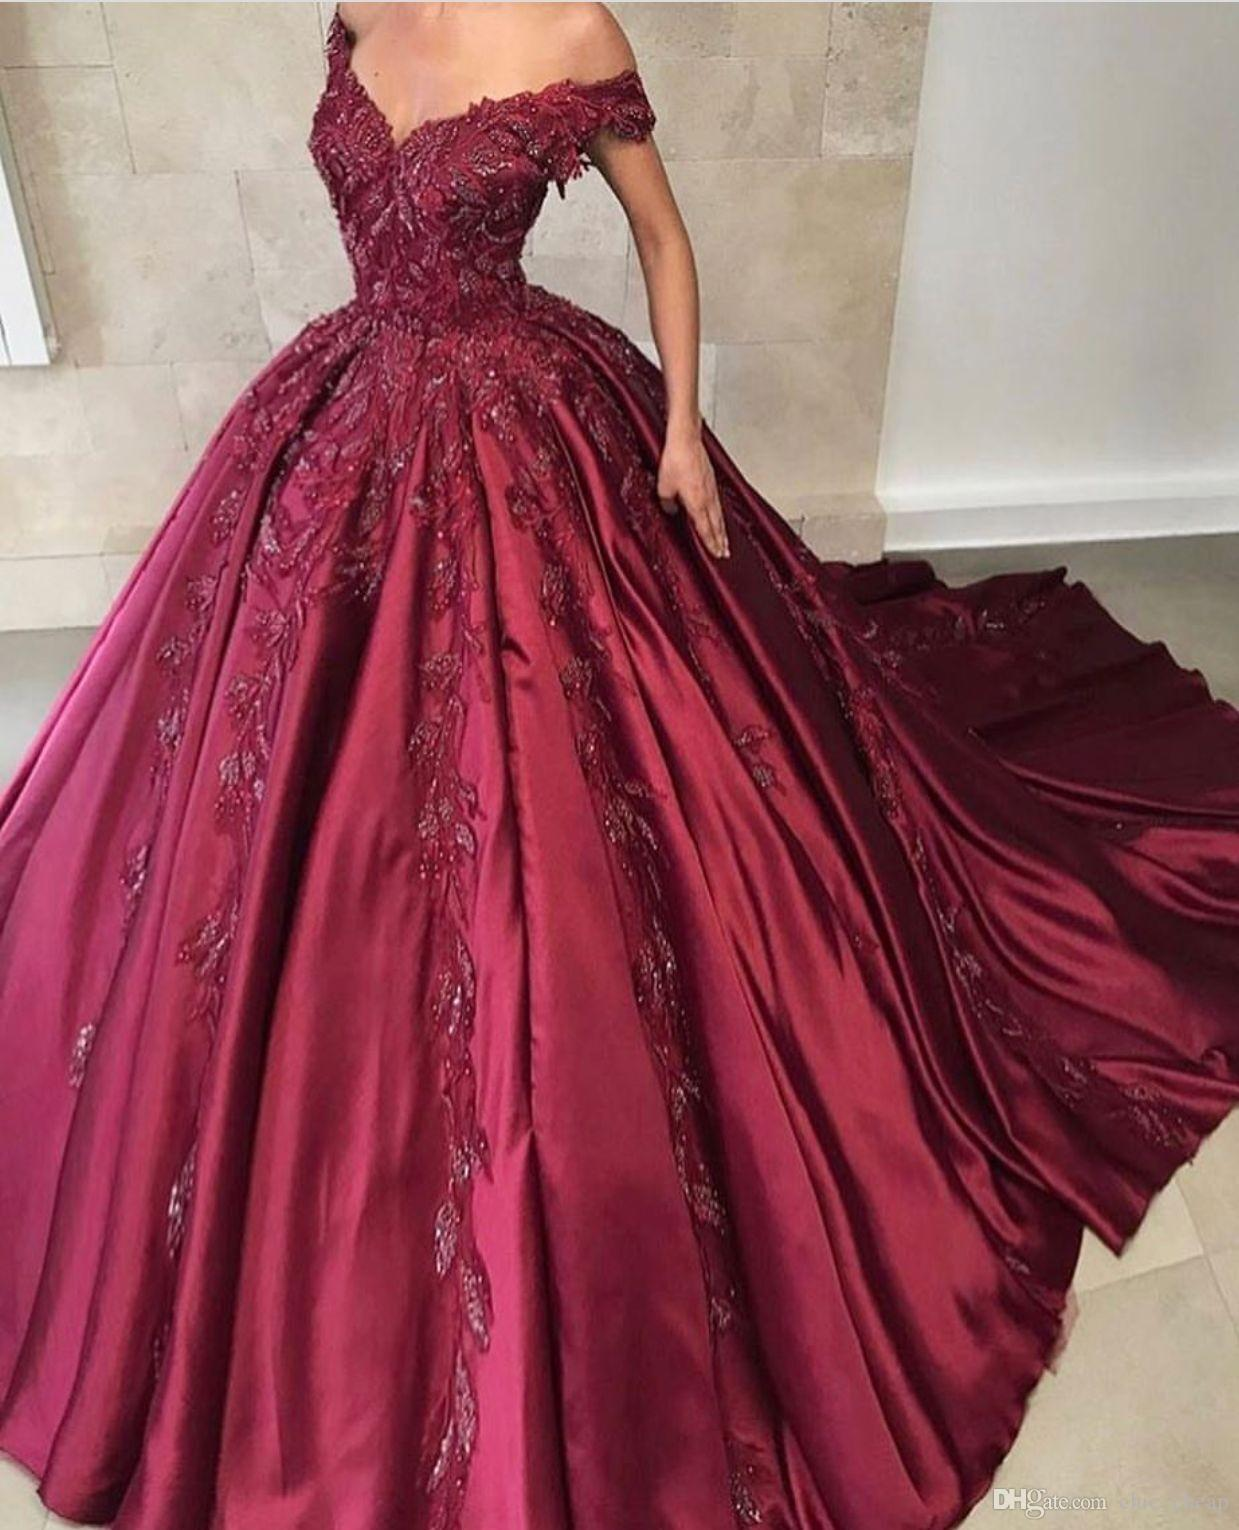 fa72689063d Off Shoulder Floor Length Ball Gown Stain Applique Sequins Elegant Quinceanera  Dresses 2018 Custom Made Vintage Prom Dresses Red Dress Flower Girl Dresses  ...